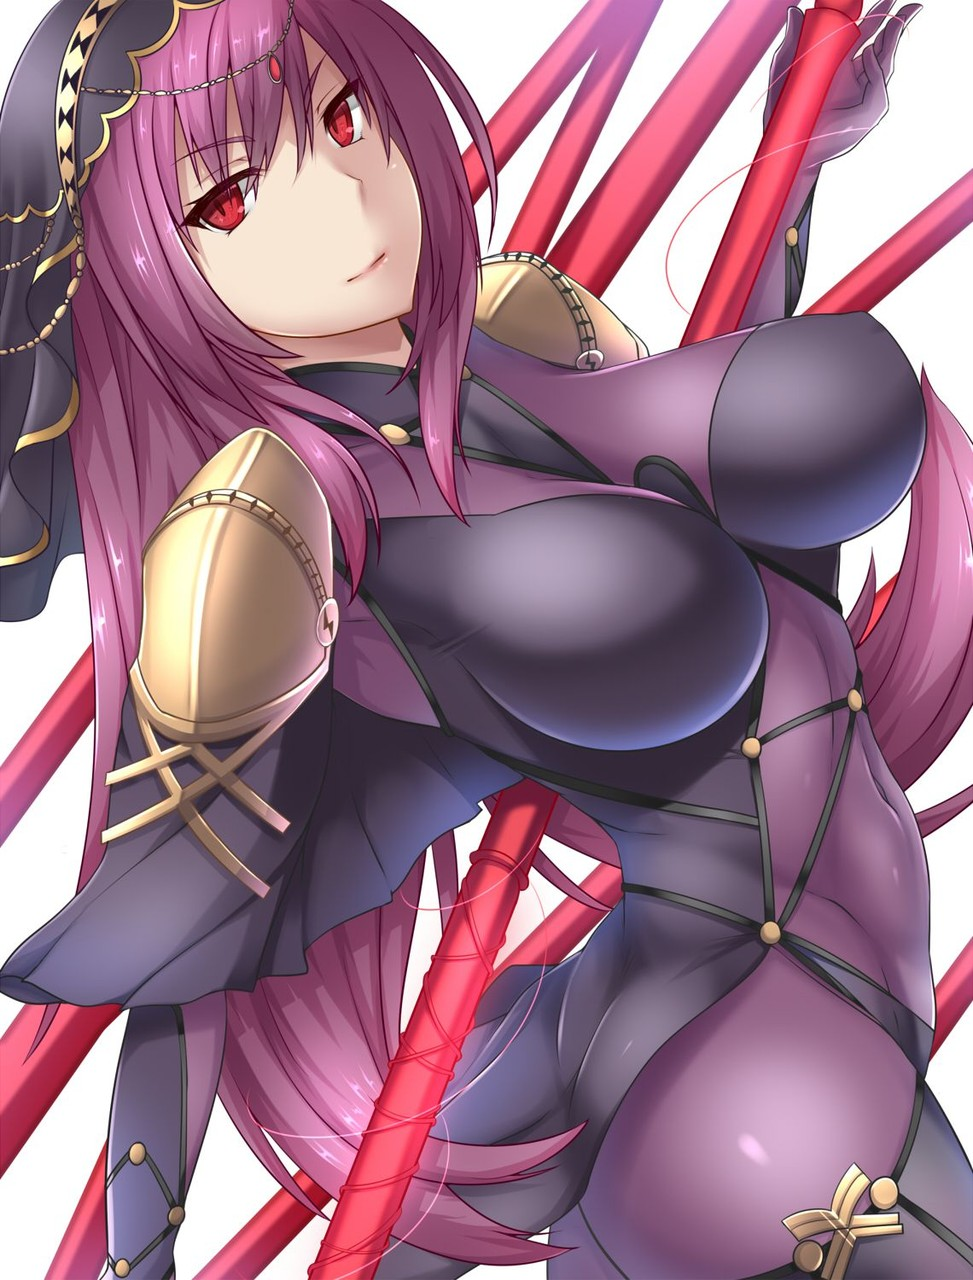 scathach_(fategrand_order)103